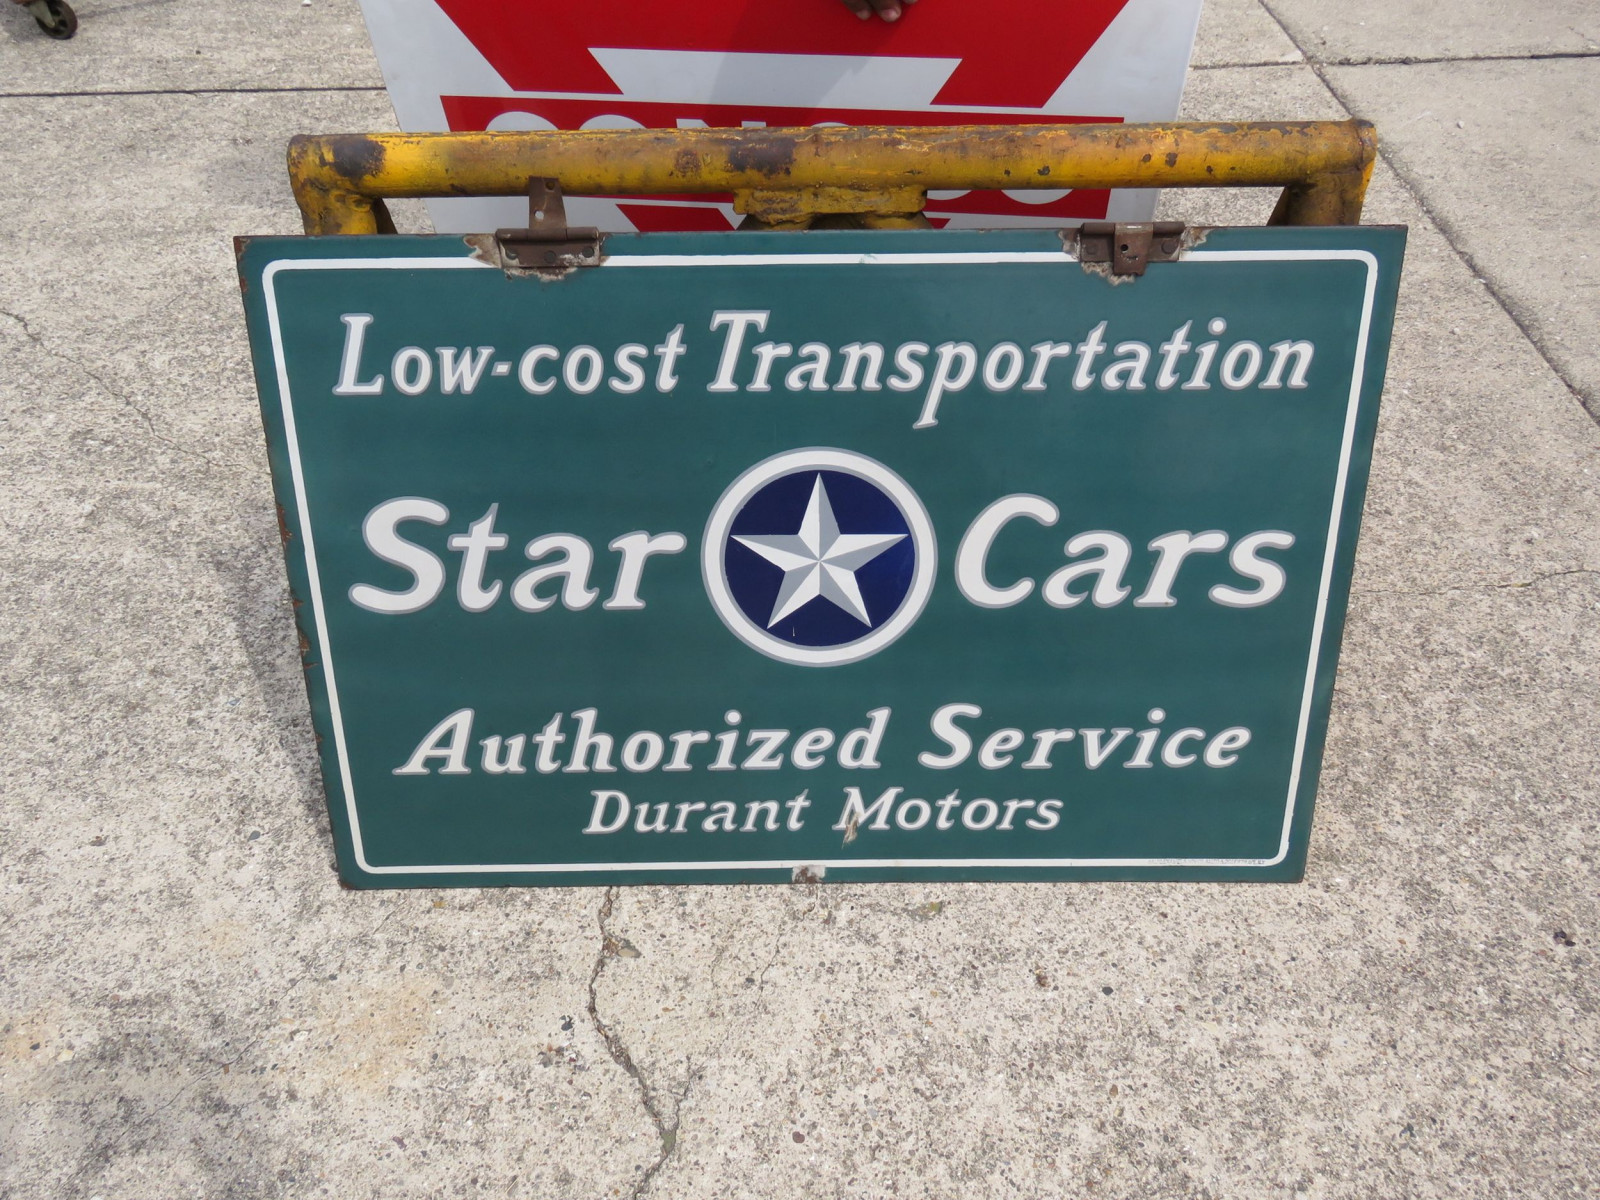 Durrant Star Cars Porcelain sign - Image 1